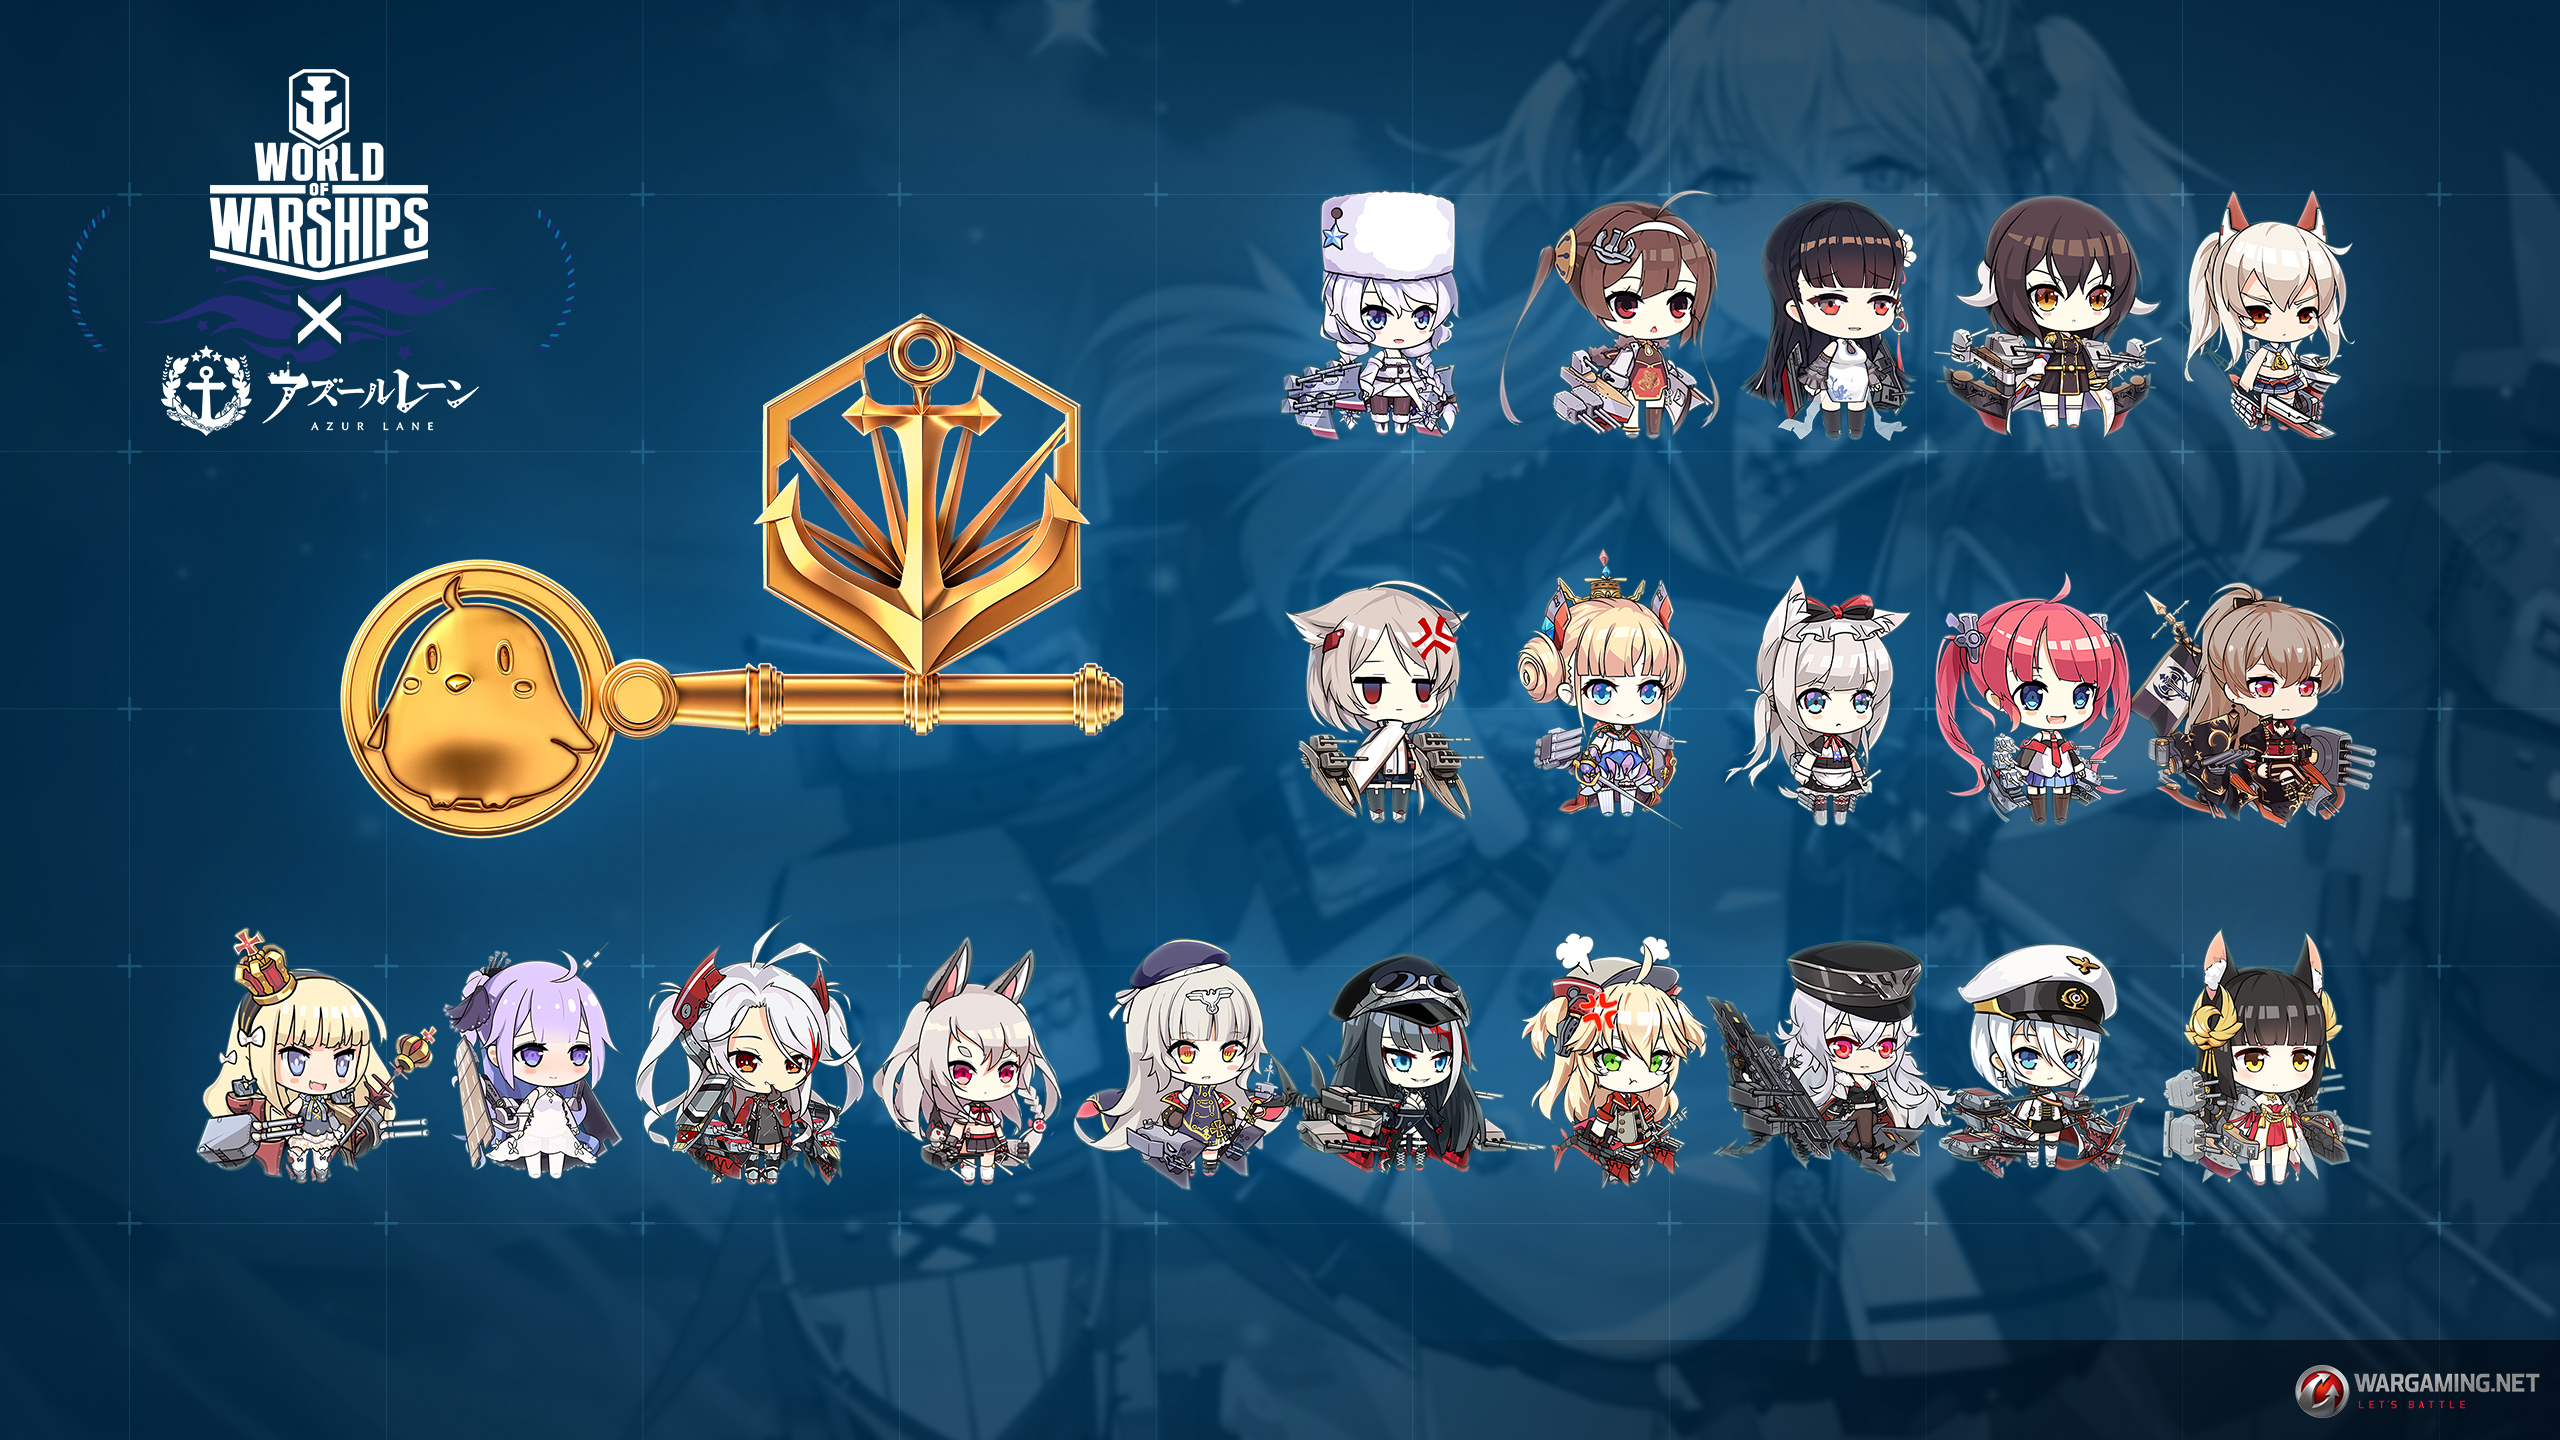 『World of Warships』×『アズールレーン』